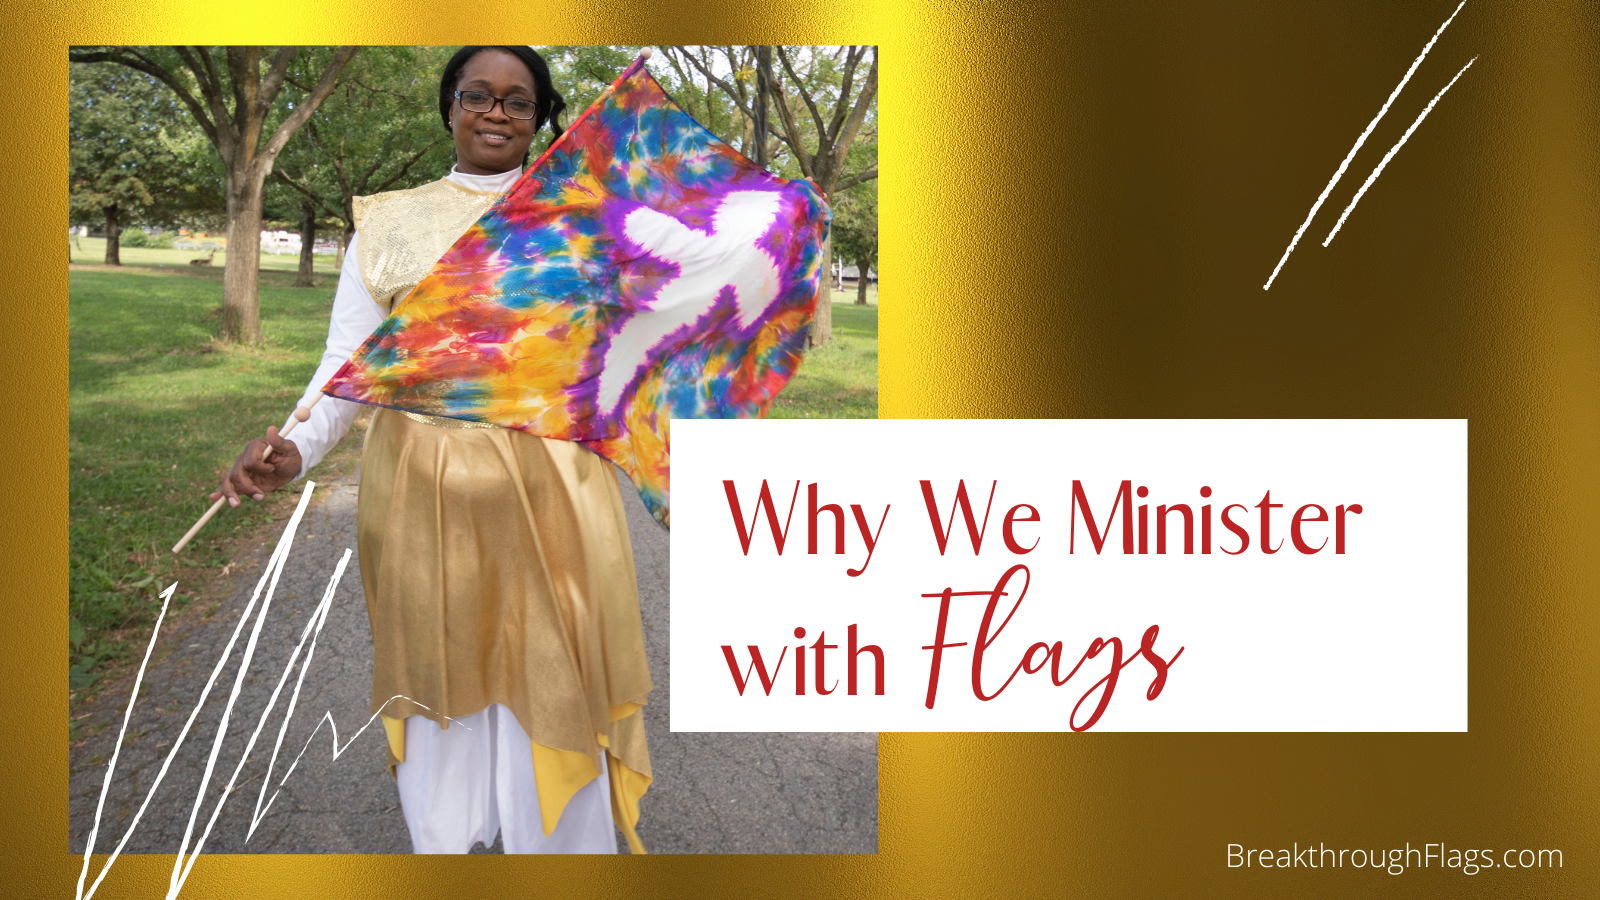 Why We Minister with Flags